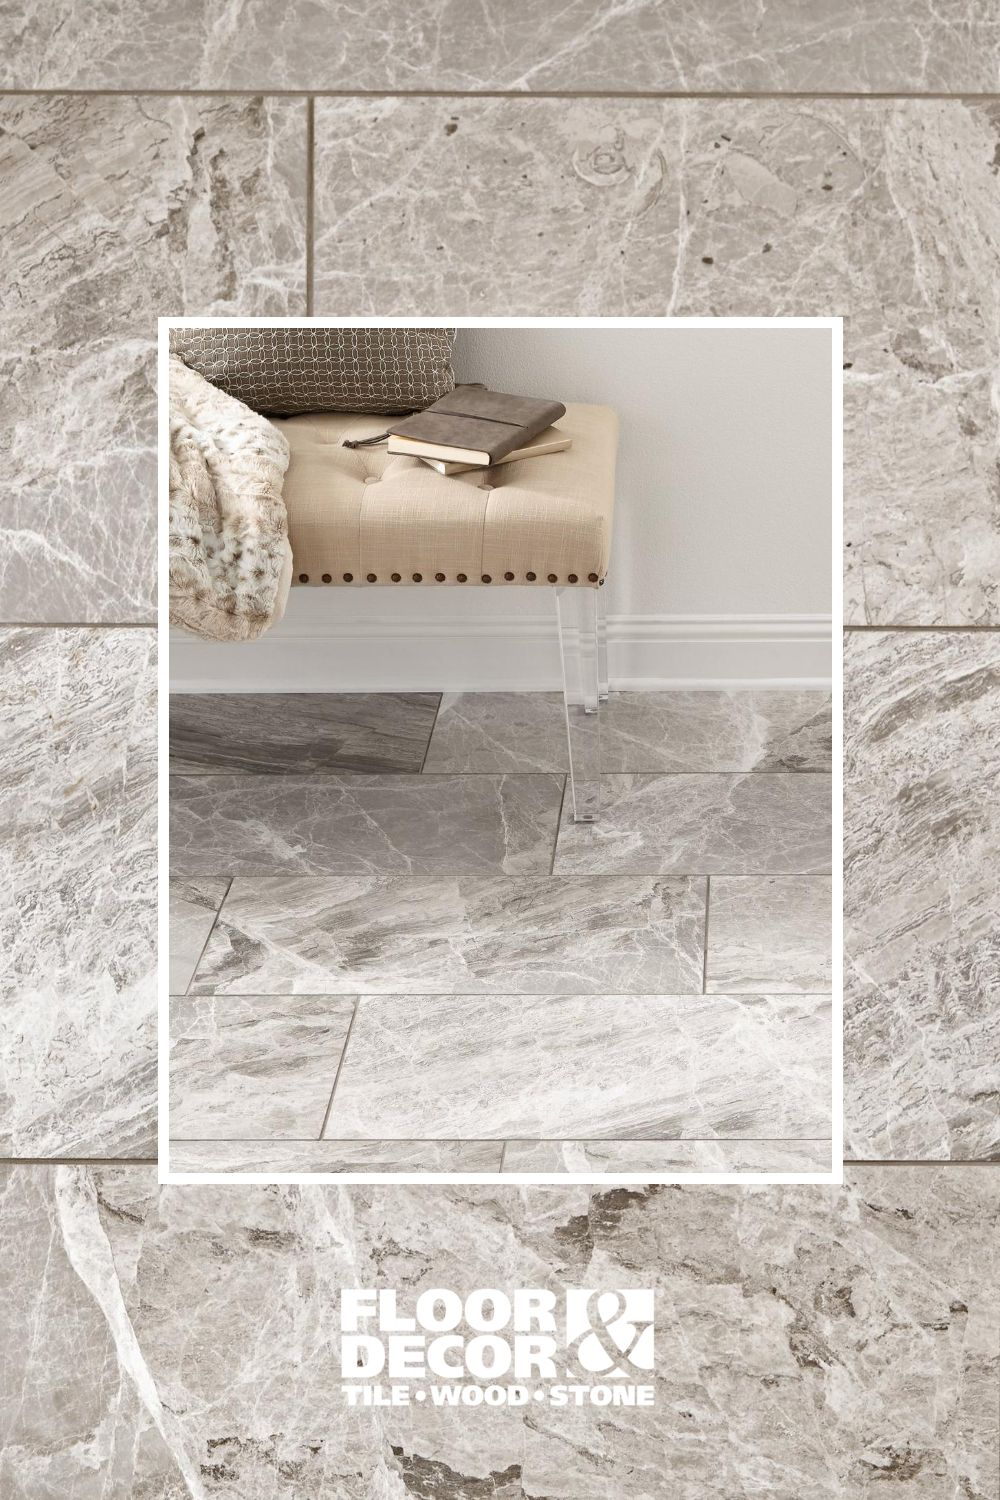 Maravilla City Gray Polished Marble Tile In 2020 Floor Decor Polished Marble Tiles Flooring